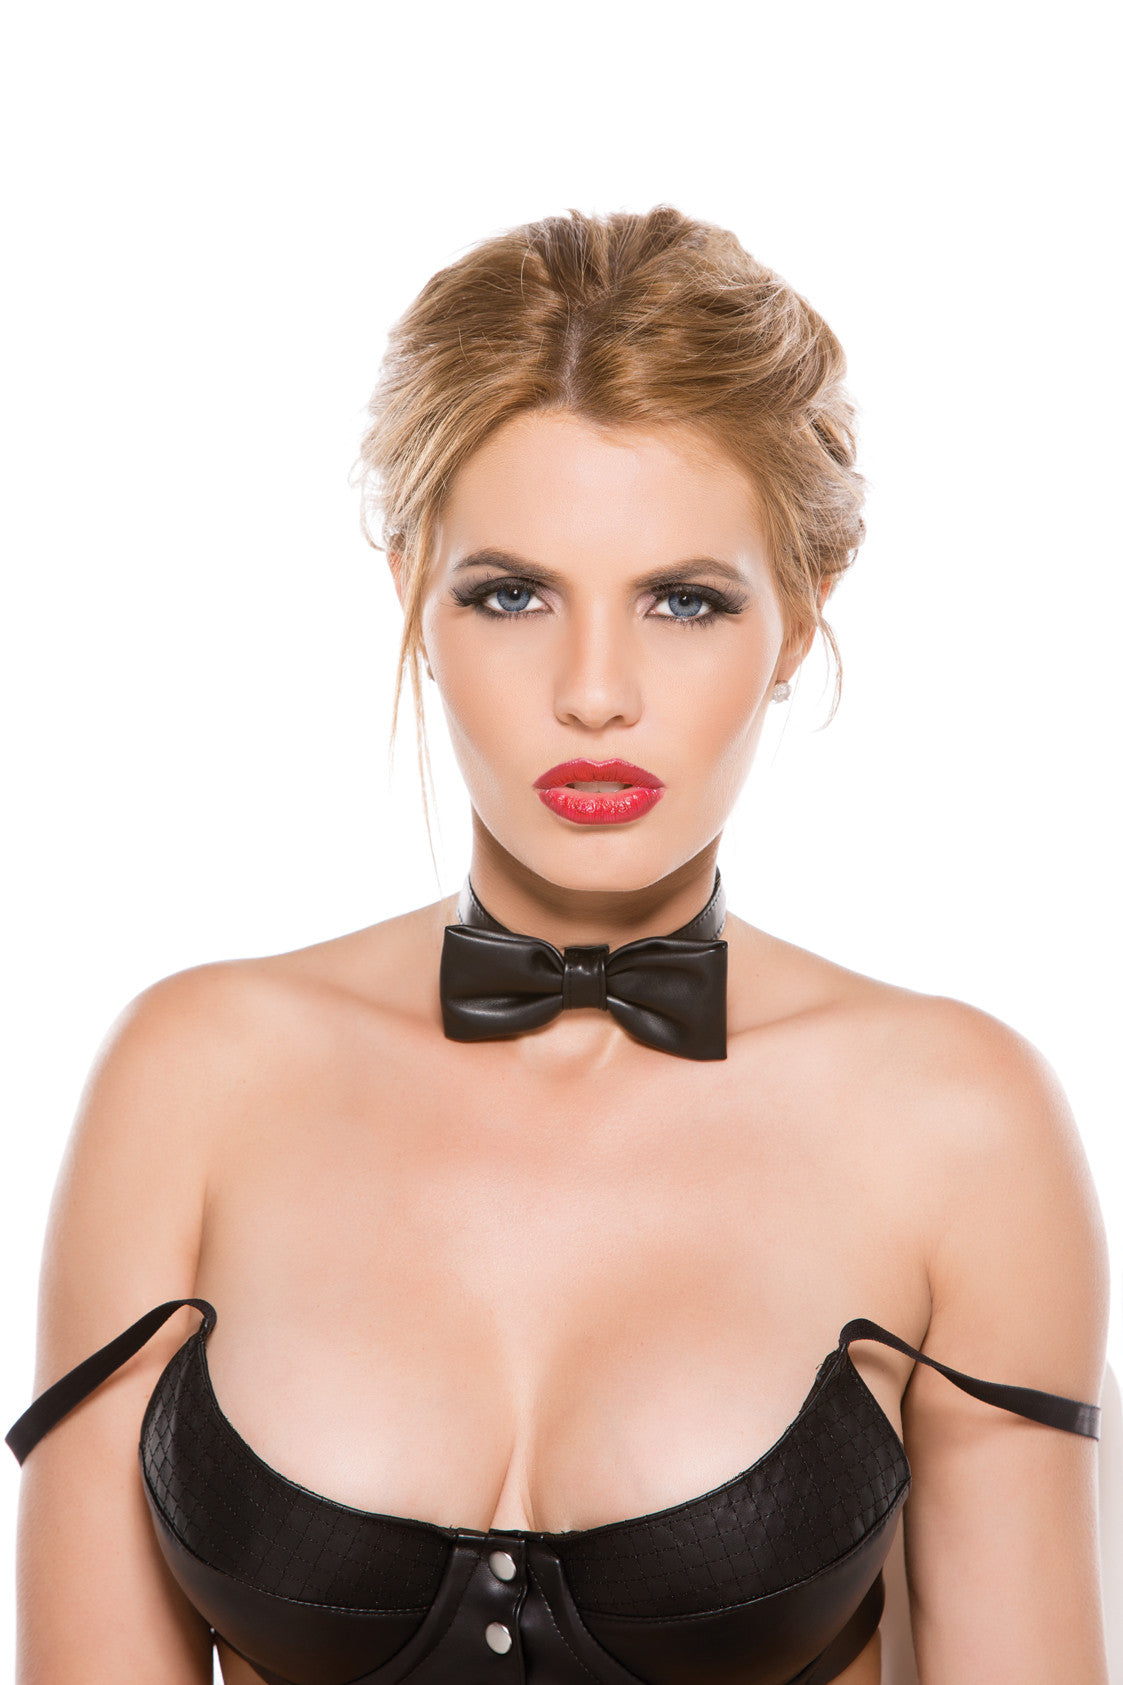 BLACK FAUX LEATHER BOW TIE COLLAR O/S - Sex Toy Factory - Allure Lingerie